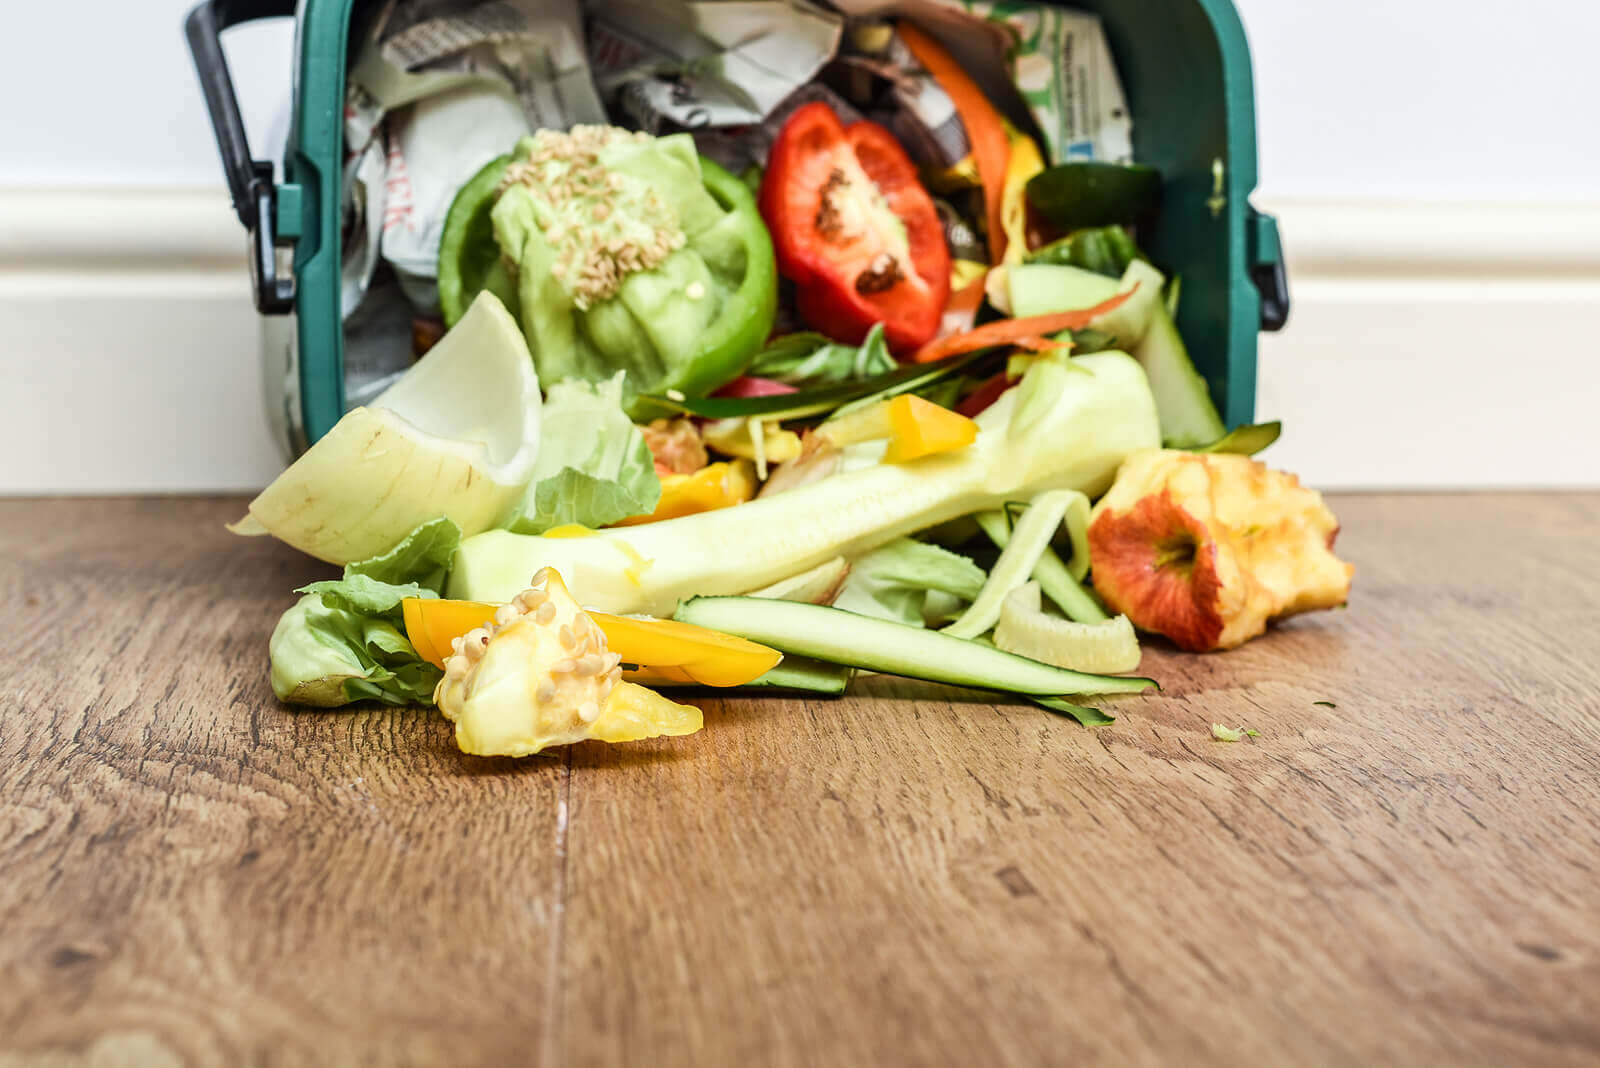 A green food waste caddy full of fruit and vegetable scraps, spilling onto a wooden floor